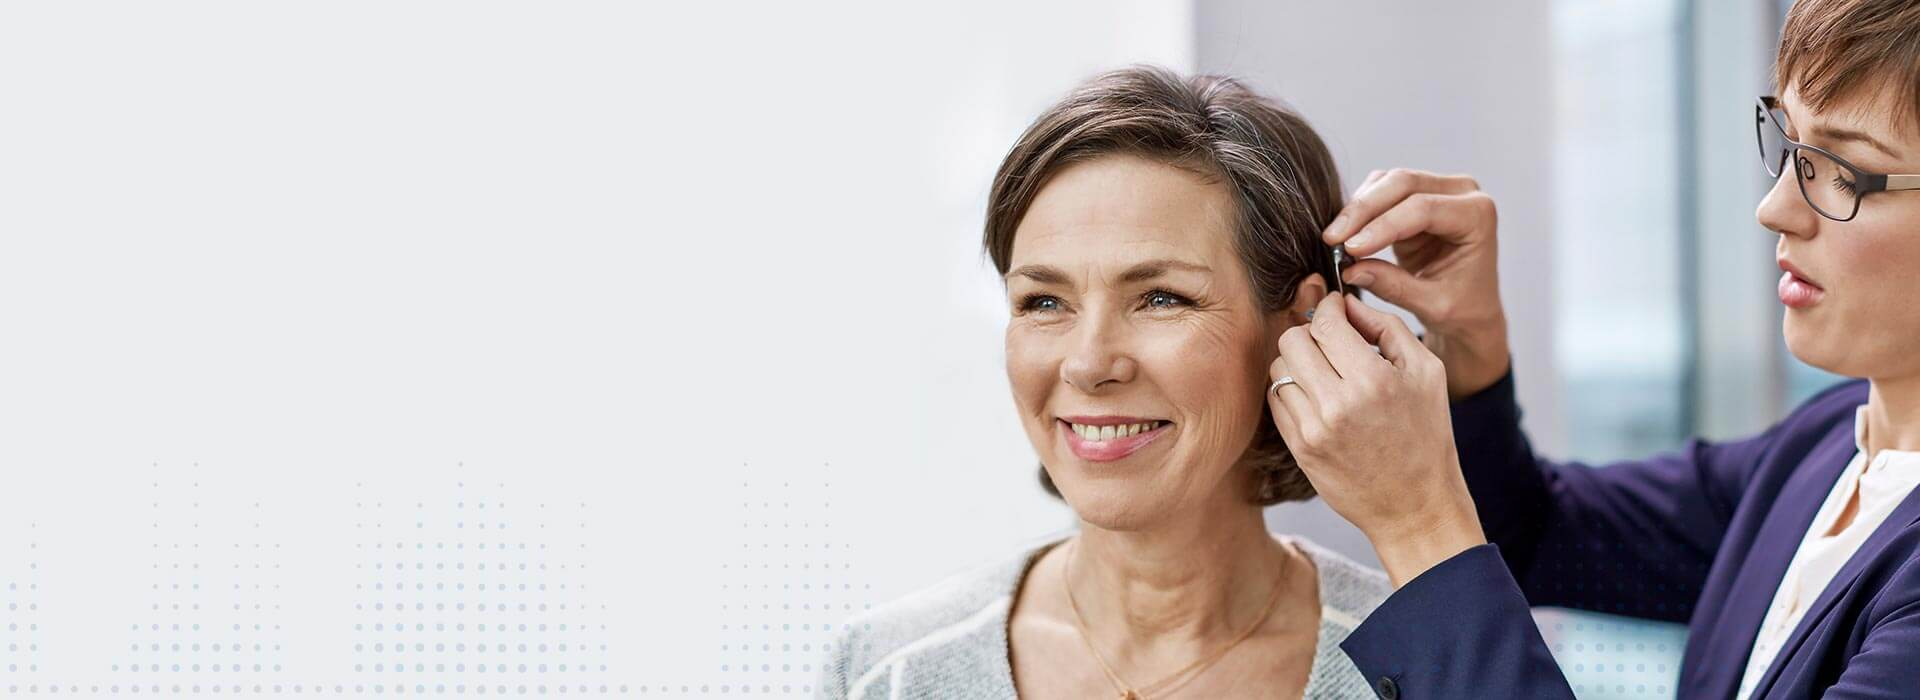 Get_personal_hearing_aid_fittings_1920x700_v1_dva